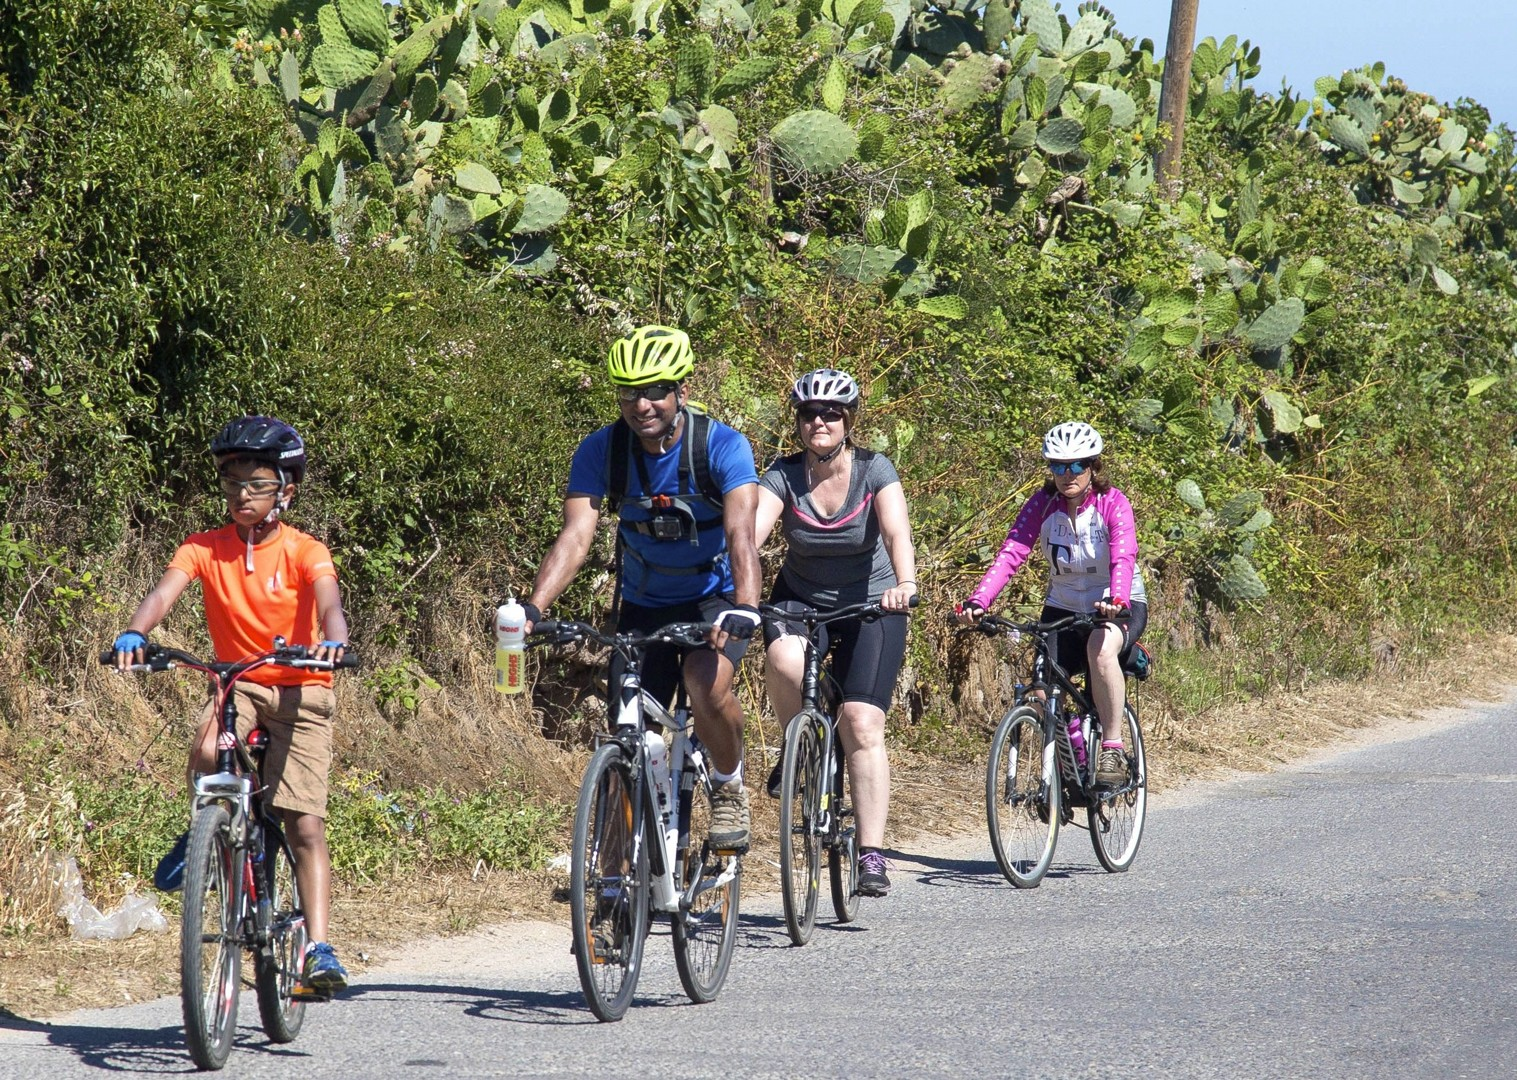 SardiniaCycling-101.jpg - Italy - Sardinia - Coasts and Islands - Self-Guided Family Cycling Holiday - Family Cycling